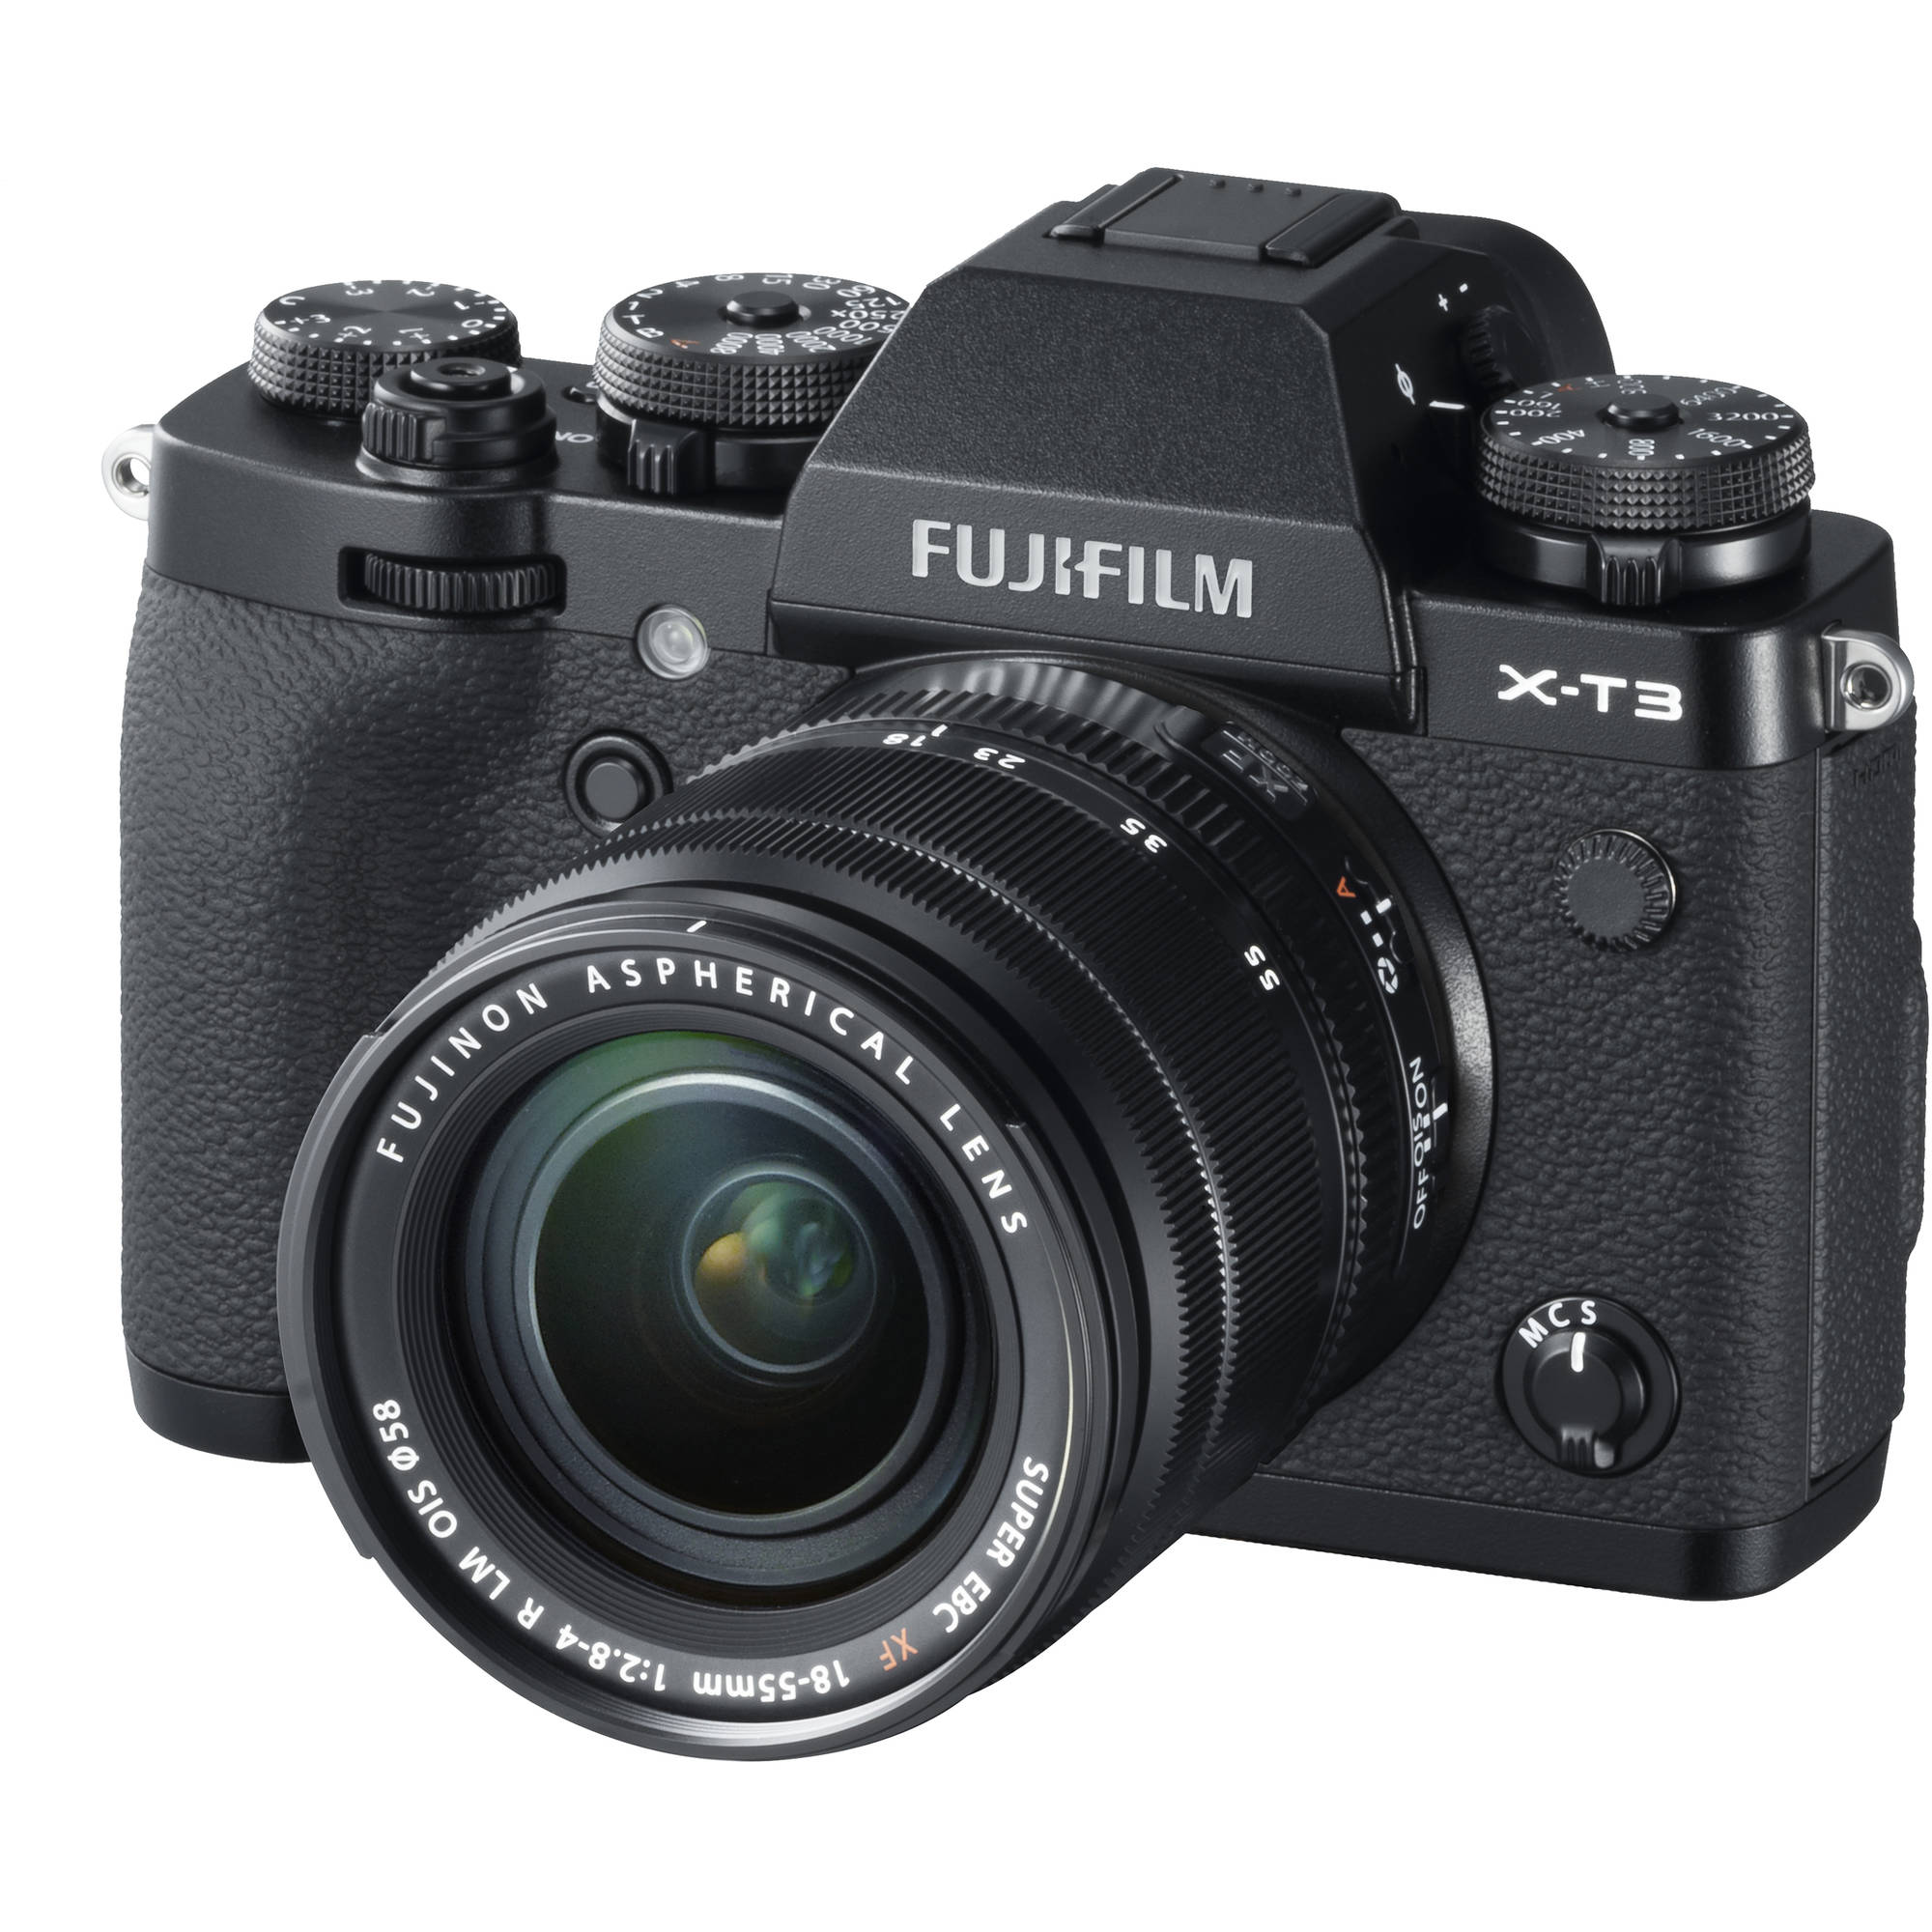 FUJIFILM X-T3 Mirrorless Digital Camera KIT 18-55mm Lens (Black)